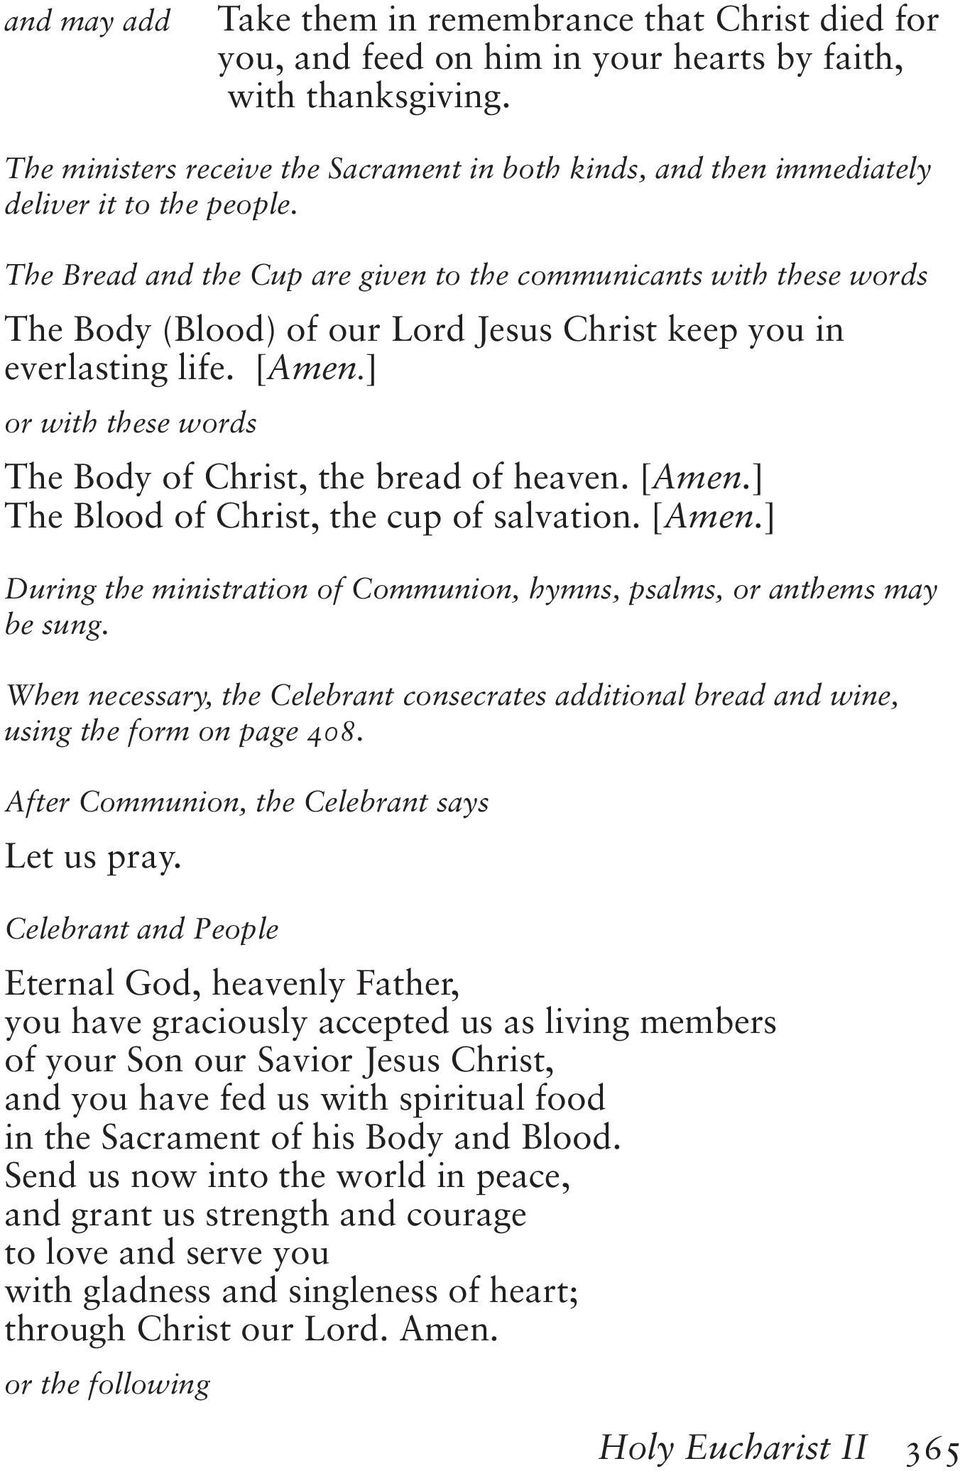 The Bread and the Cup are given to the communicants with these words The Body (Blood) of our Lord Jesus Christ keep you in everlasting life. [Amen.